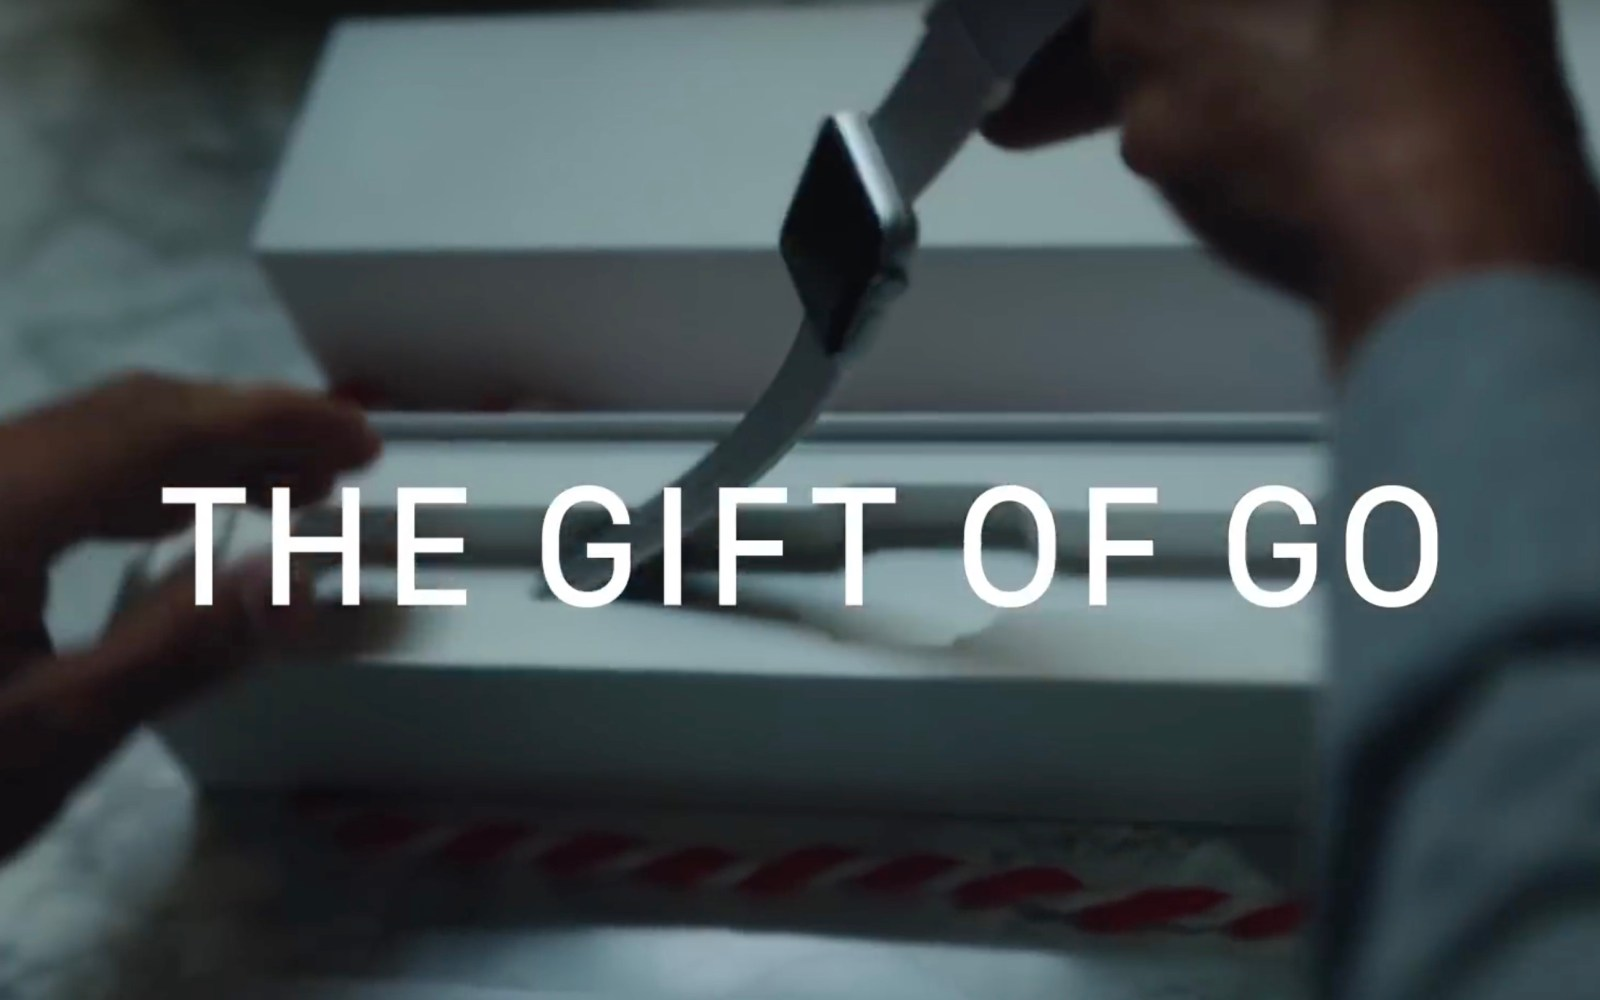 Apple shares four holiday-themed ads for Apple Watch Series 2 on YouTube